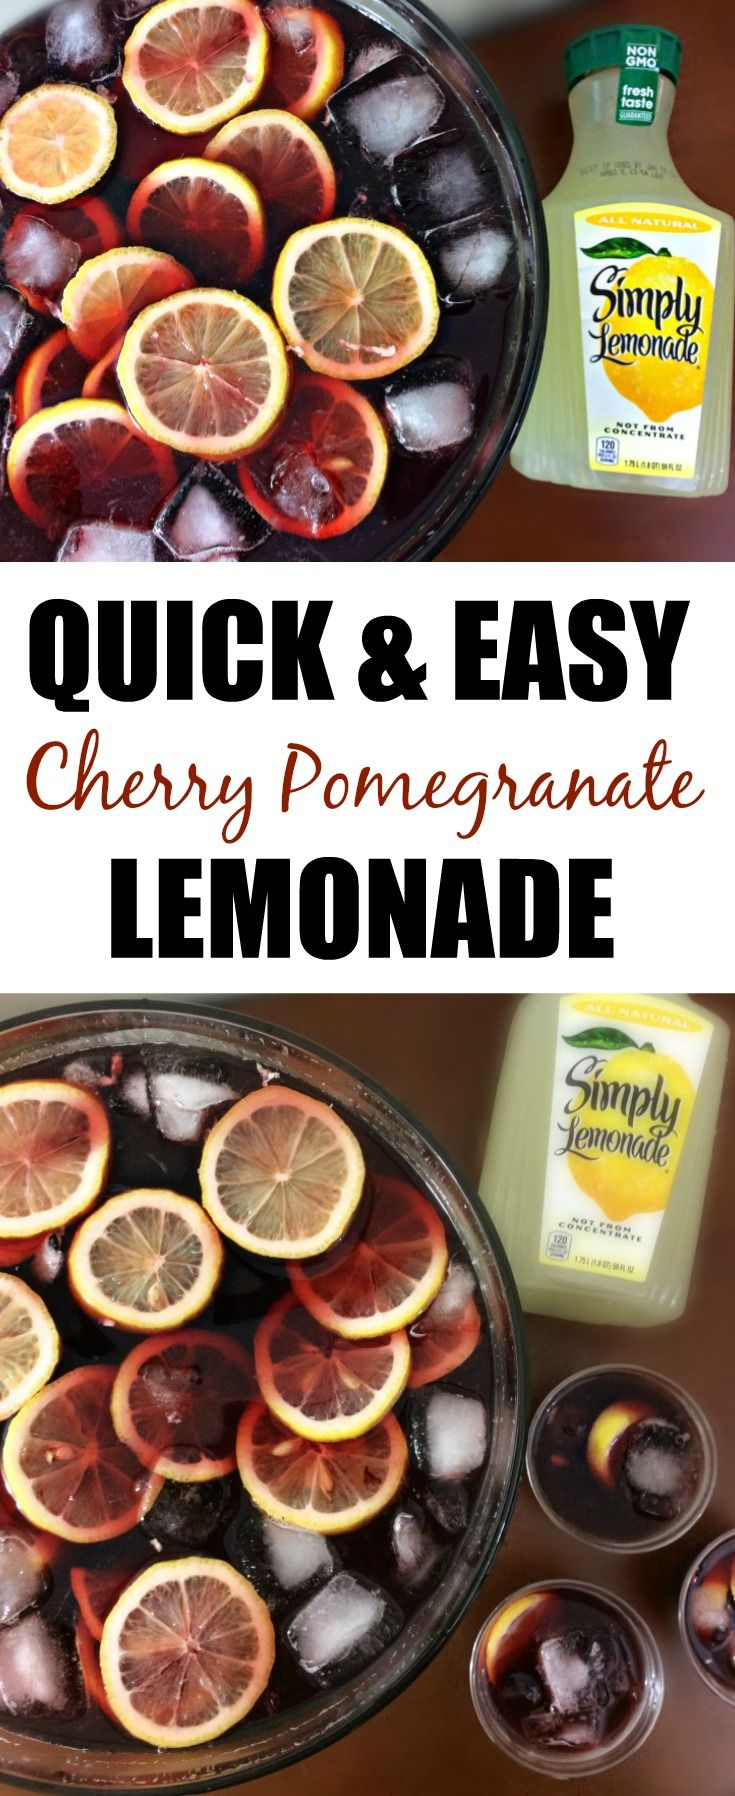 This Cherry Pomegranate Lemonade is so delicious, and really easy to make! Your guests will absolutely love this festive holiday punch! Find the ingredients at Sam's Club!  #SimplyHolidaysAtSams #ad